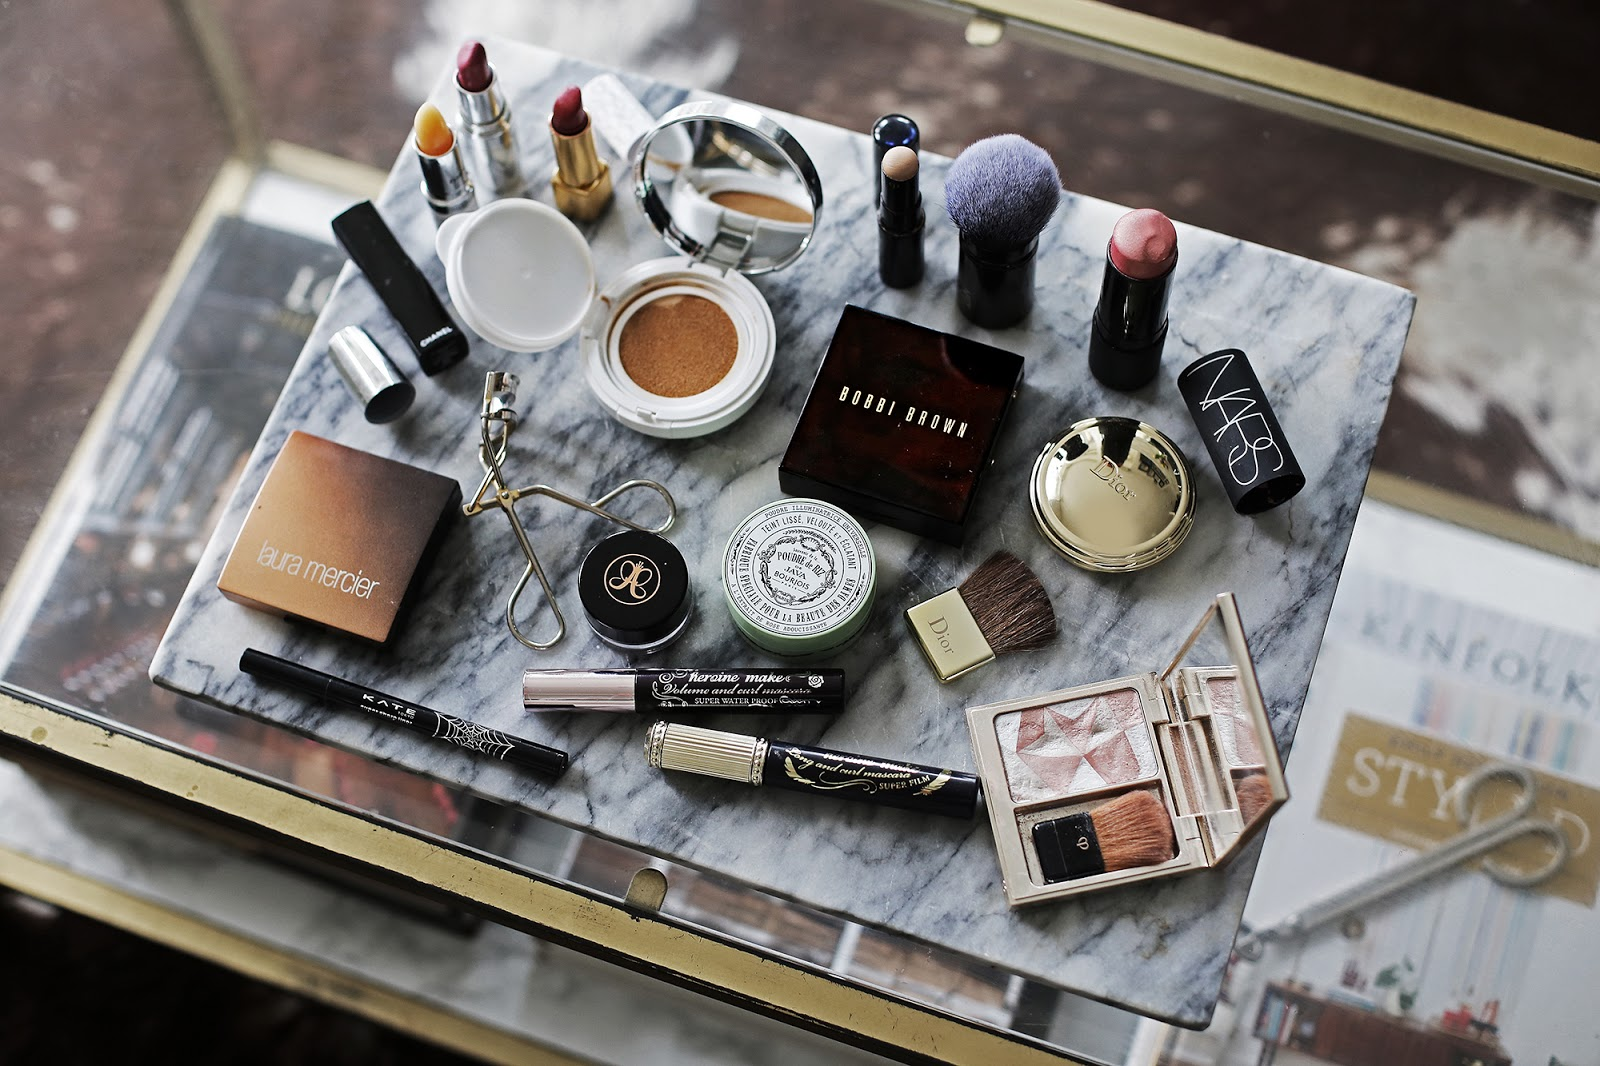 What's In My Makeup Bag - My 16 Luxury & Drugstore Beauty Essentials